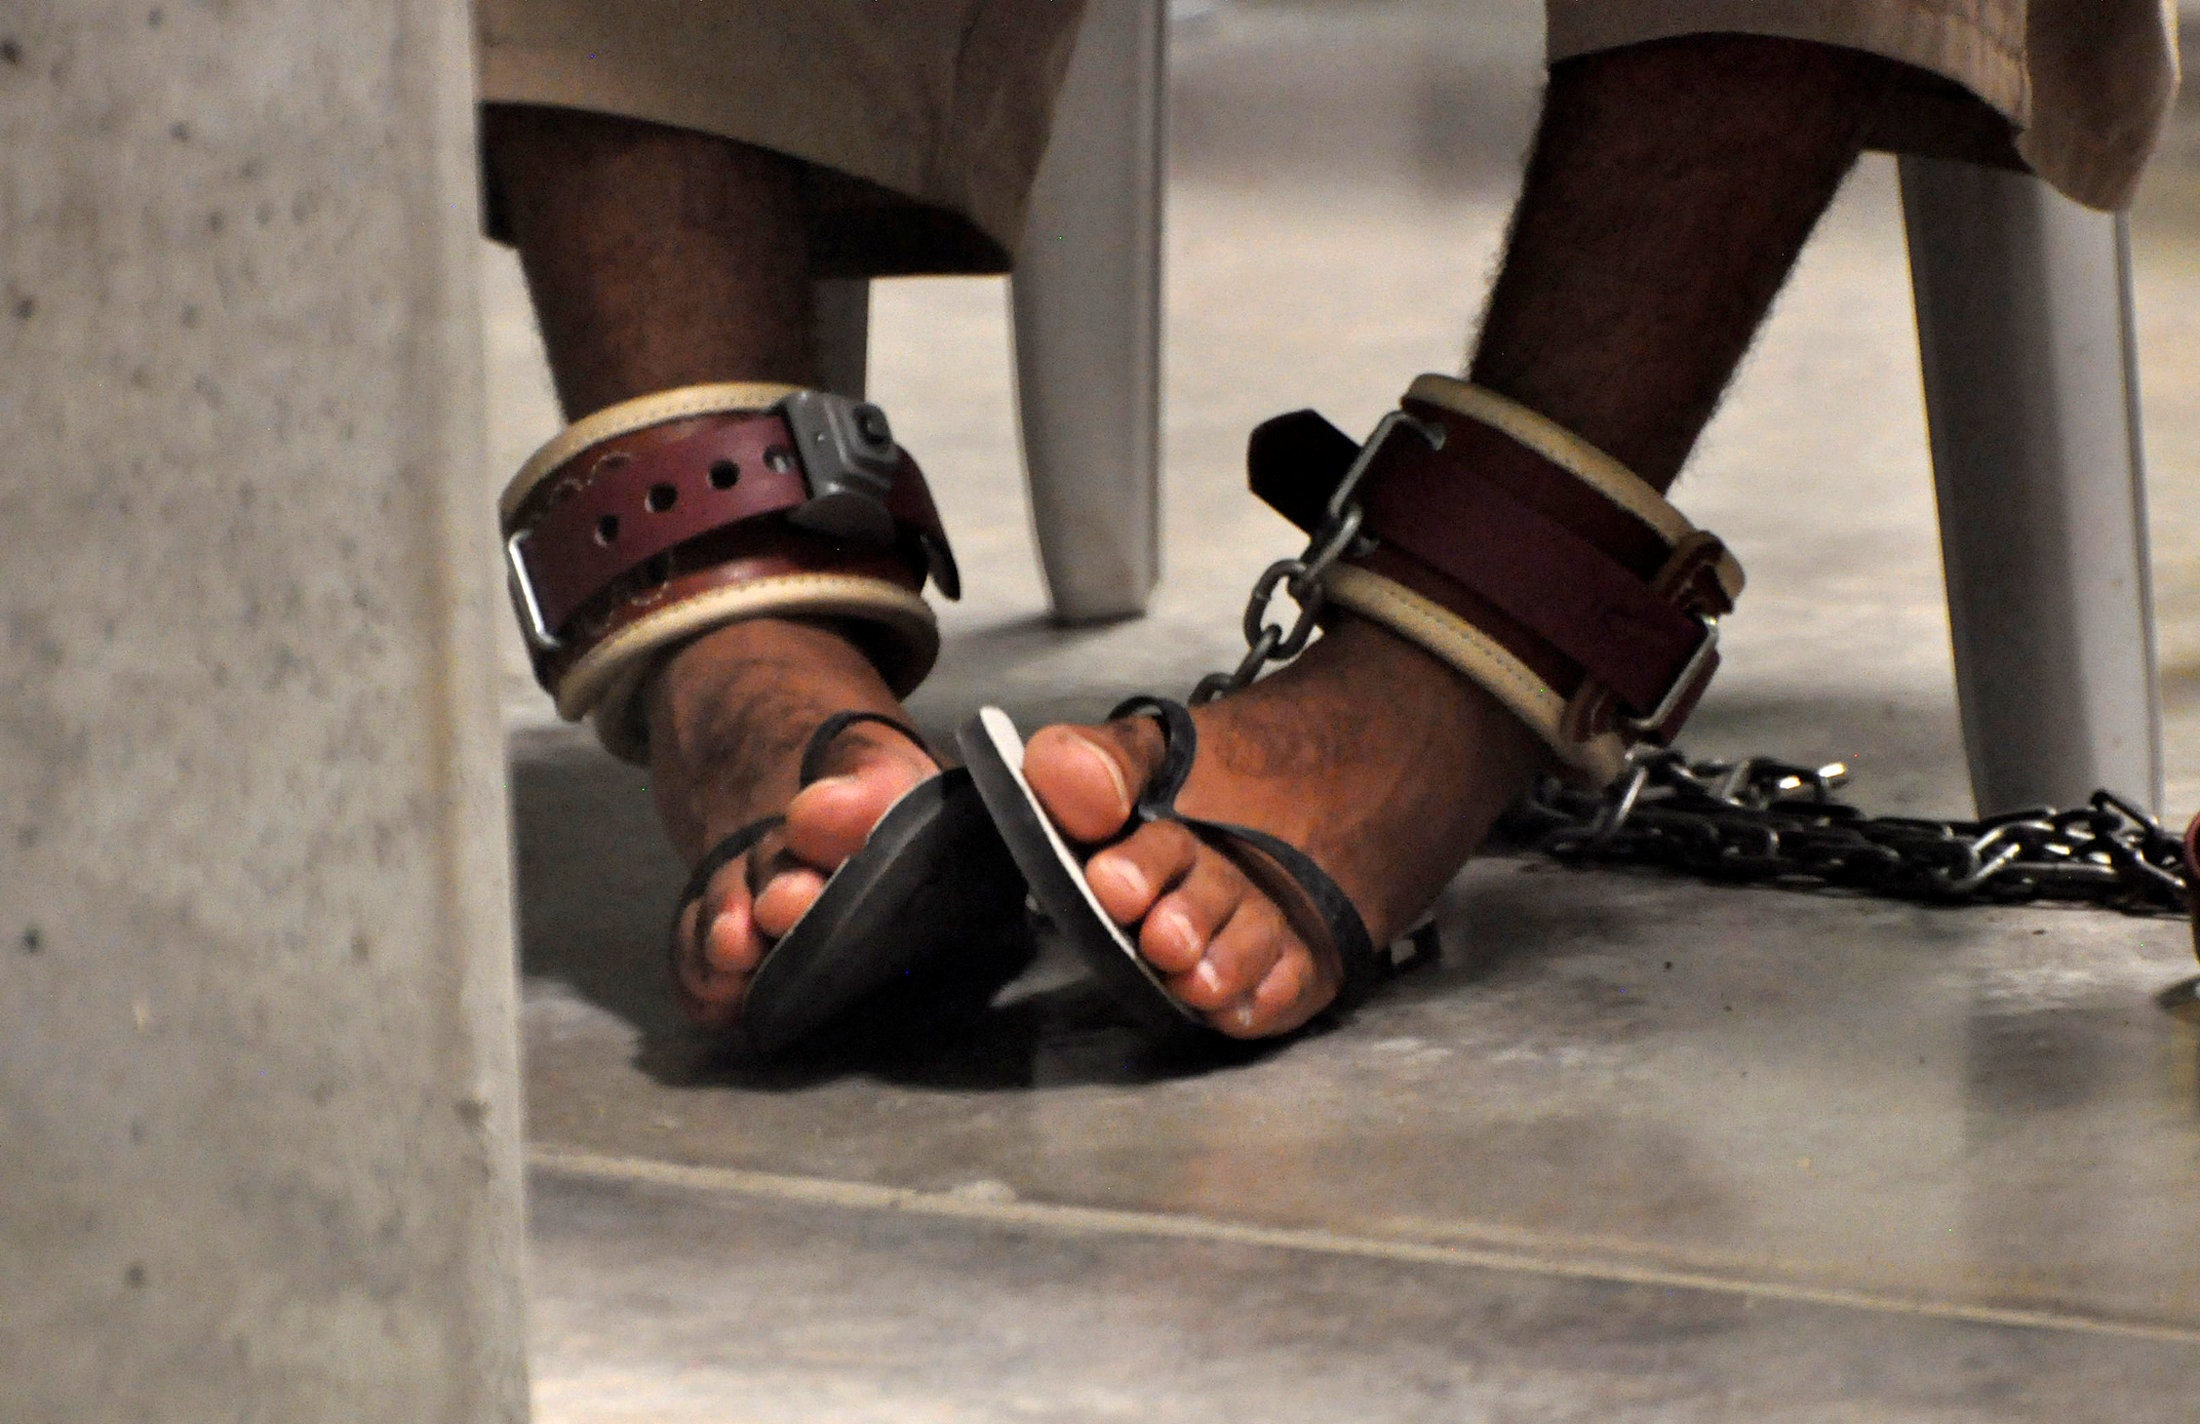 """n this photo, reviewed by a U.S. Department of Defense official, a Guantanamo detainee's feet are shackled to the floor as he attends a """"Life Skills"""" class inside the Camp 6 high-security detention facility at Guantanamo Bay U.S"""